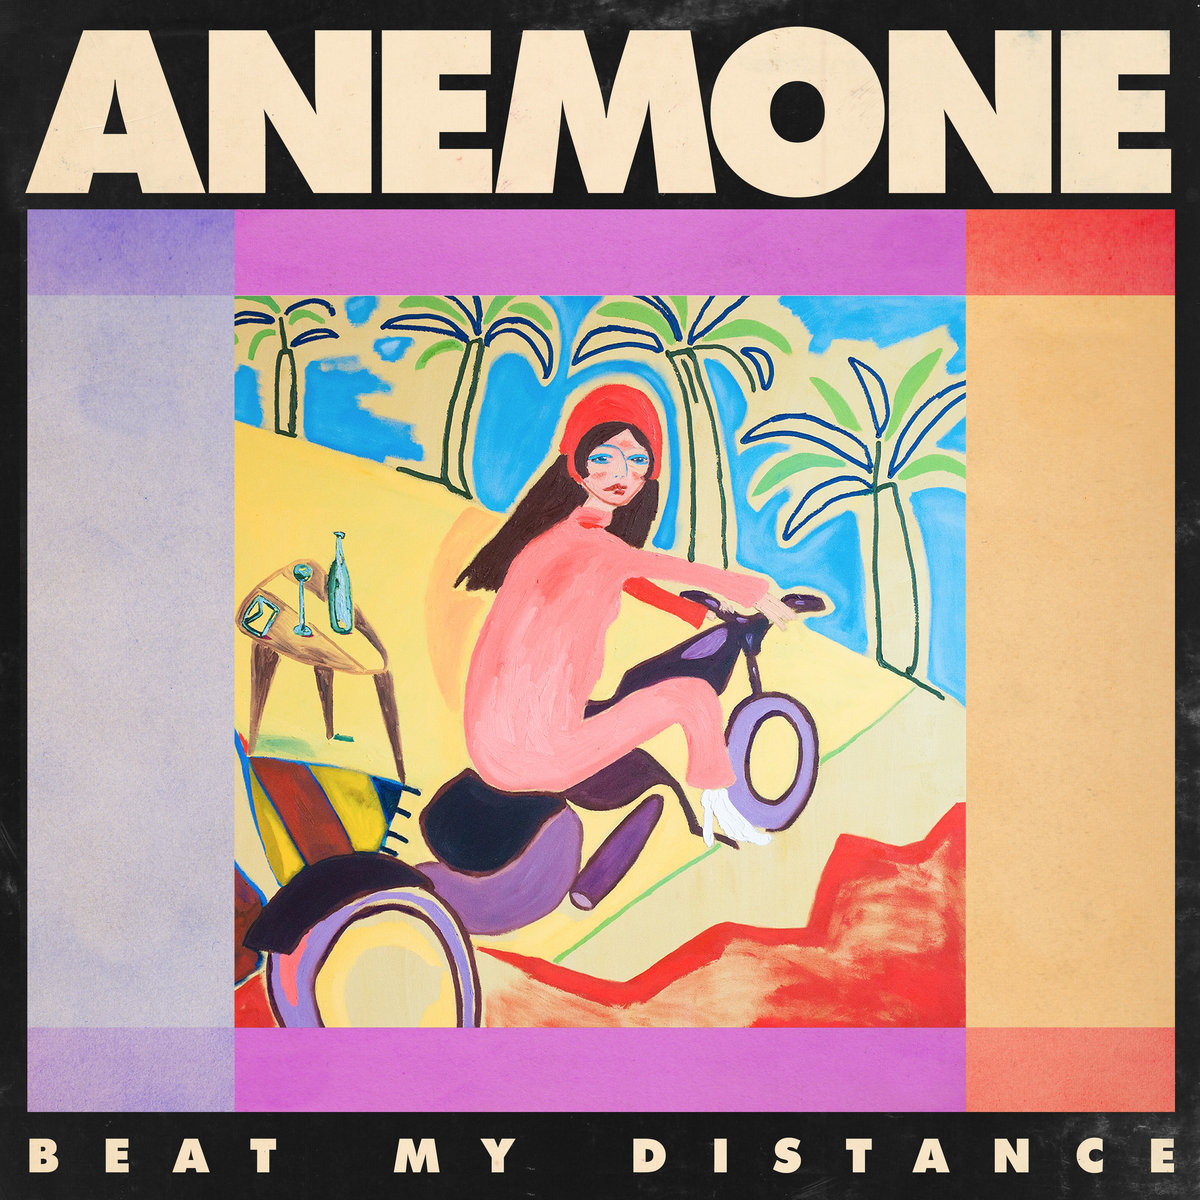 Anemone, Beat My Distance - This debut psych-pop album sees realism through a bright kaleidoscopic lense. Don't let the dreamy synth and disco basslines distract you. Fairy dust vocals and bubbly guitar melodies float us away but ultimately, the lyrical accountability through self-affirmation brings us back to earth.